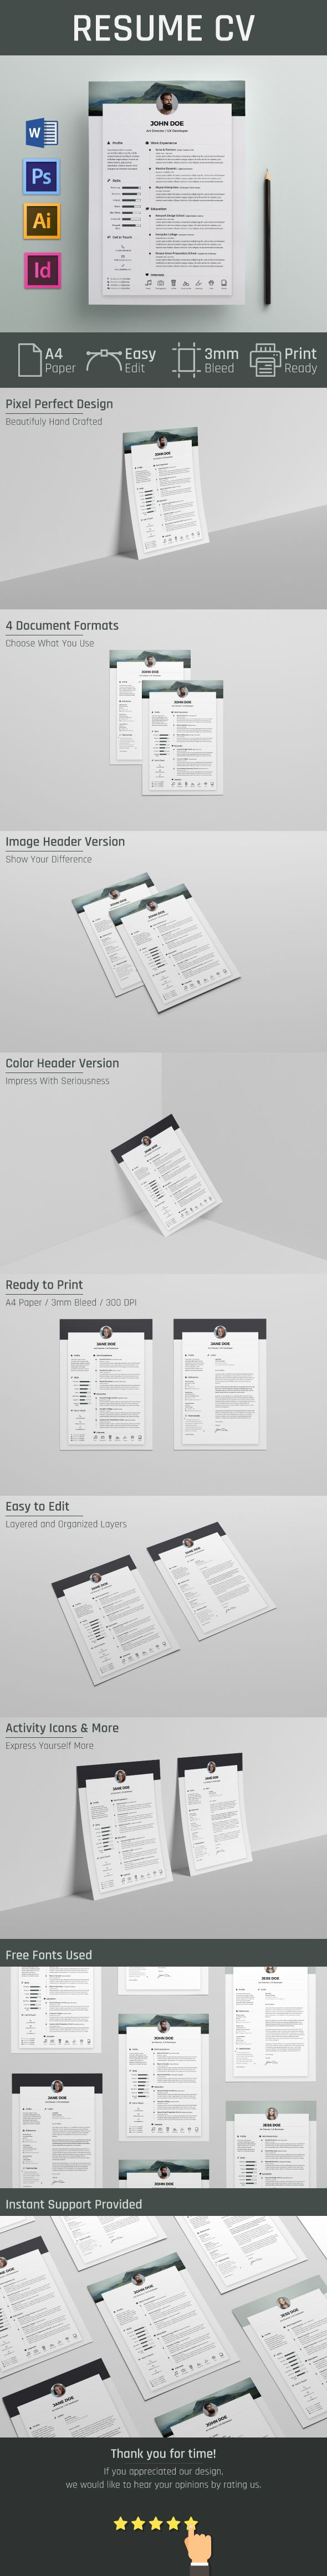 how to do a resume on microsoft word 2007%0A Check out this  Behance project   u   cFree Resume   CV Template u   d https